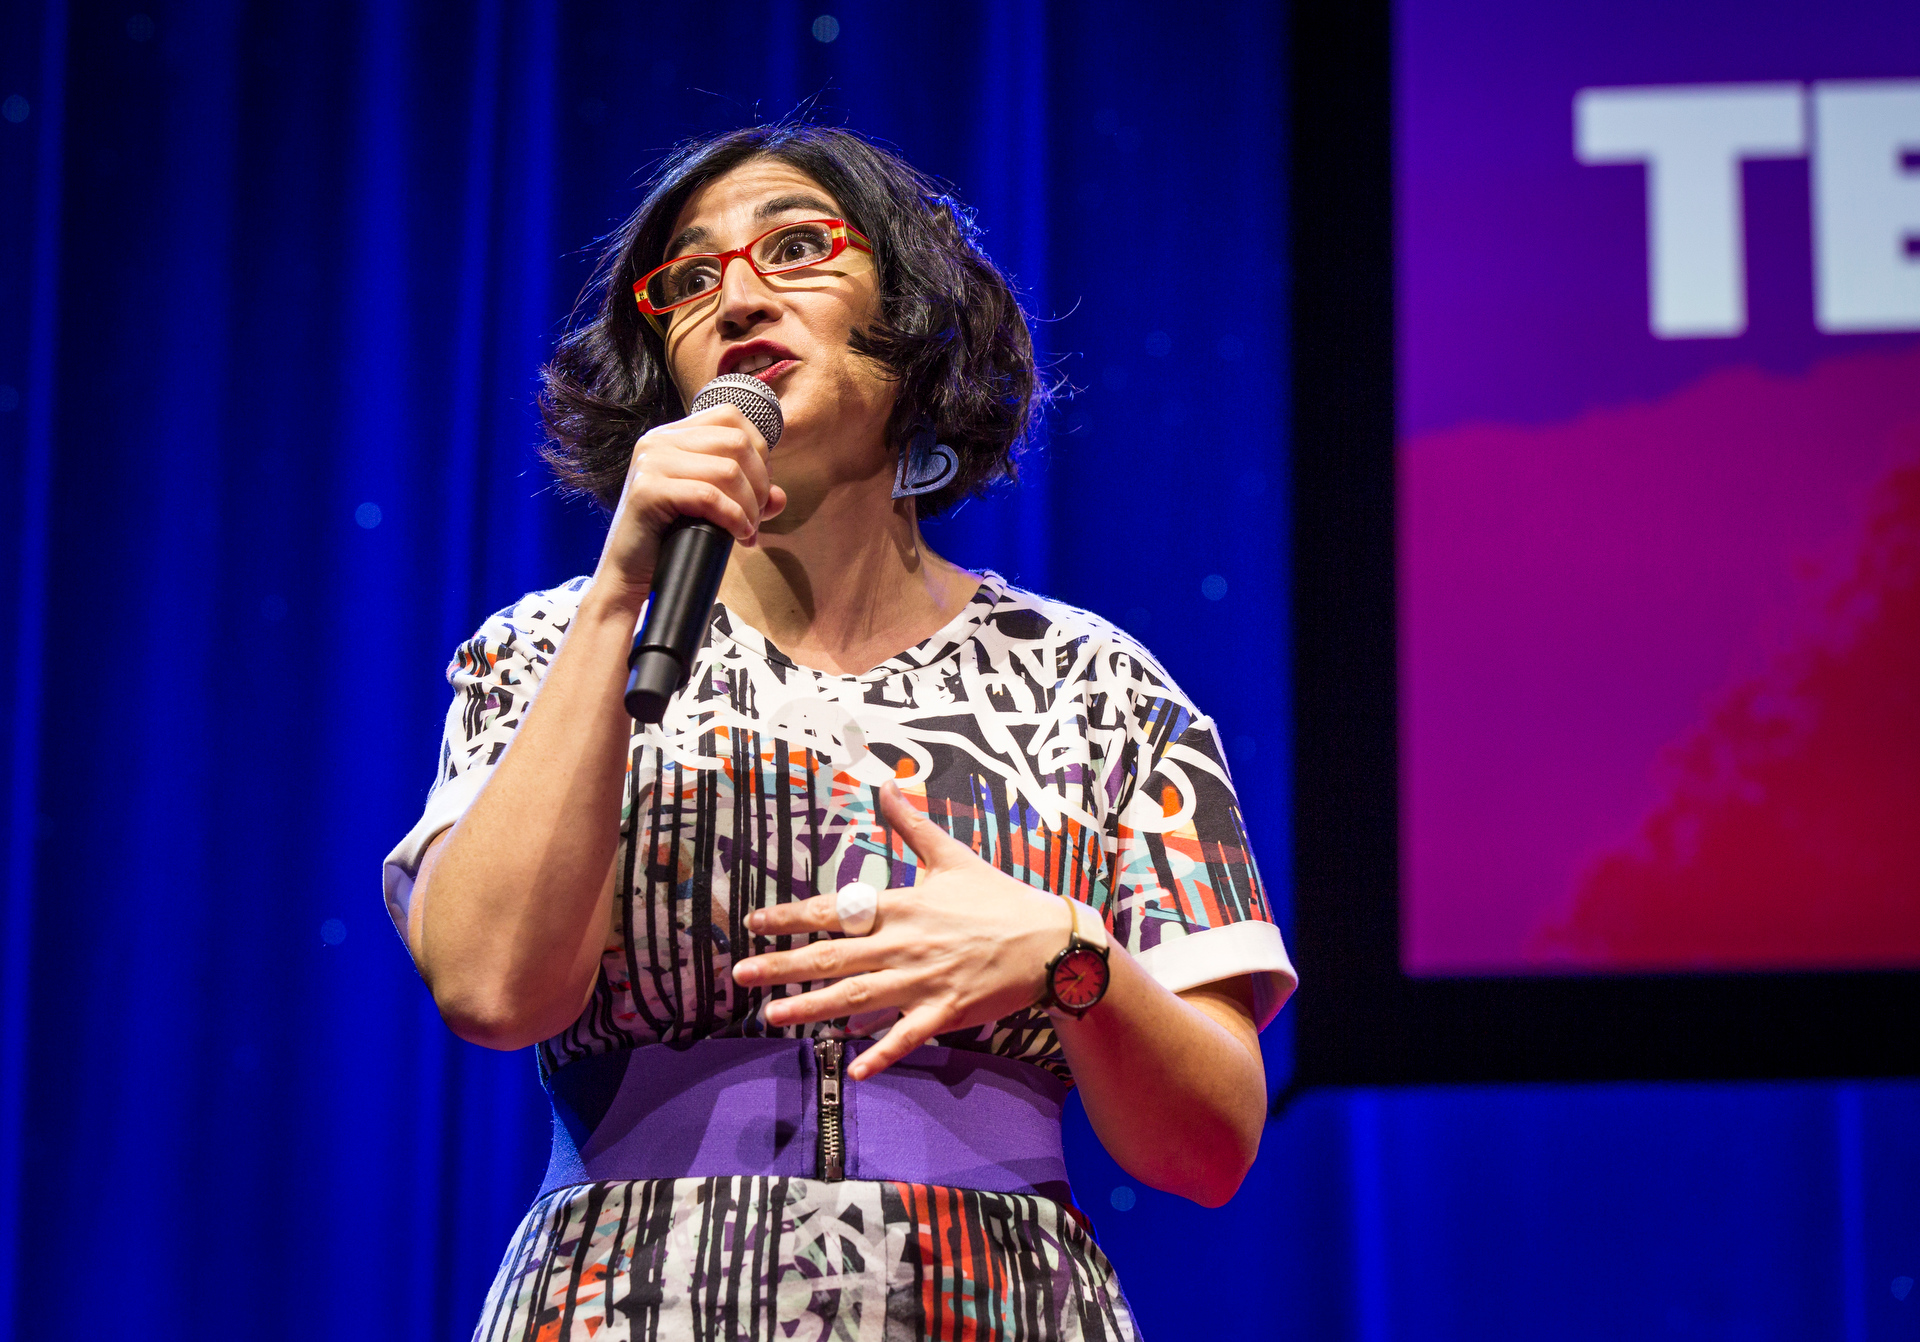 Negin Farsad skewers the Iranian-American experience at Fellows session 1, TED2015 - Truth and Dare, March 16-20, 2015, Kay Meek Center, West Vancouver, Canada. Photo: Ryan Lash/TED